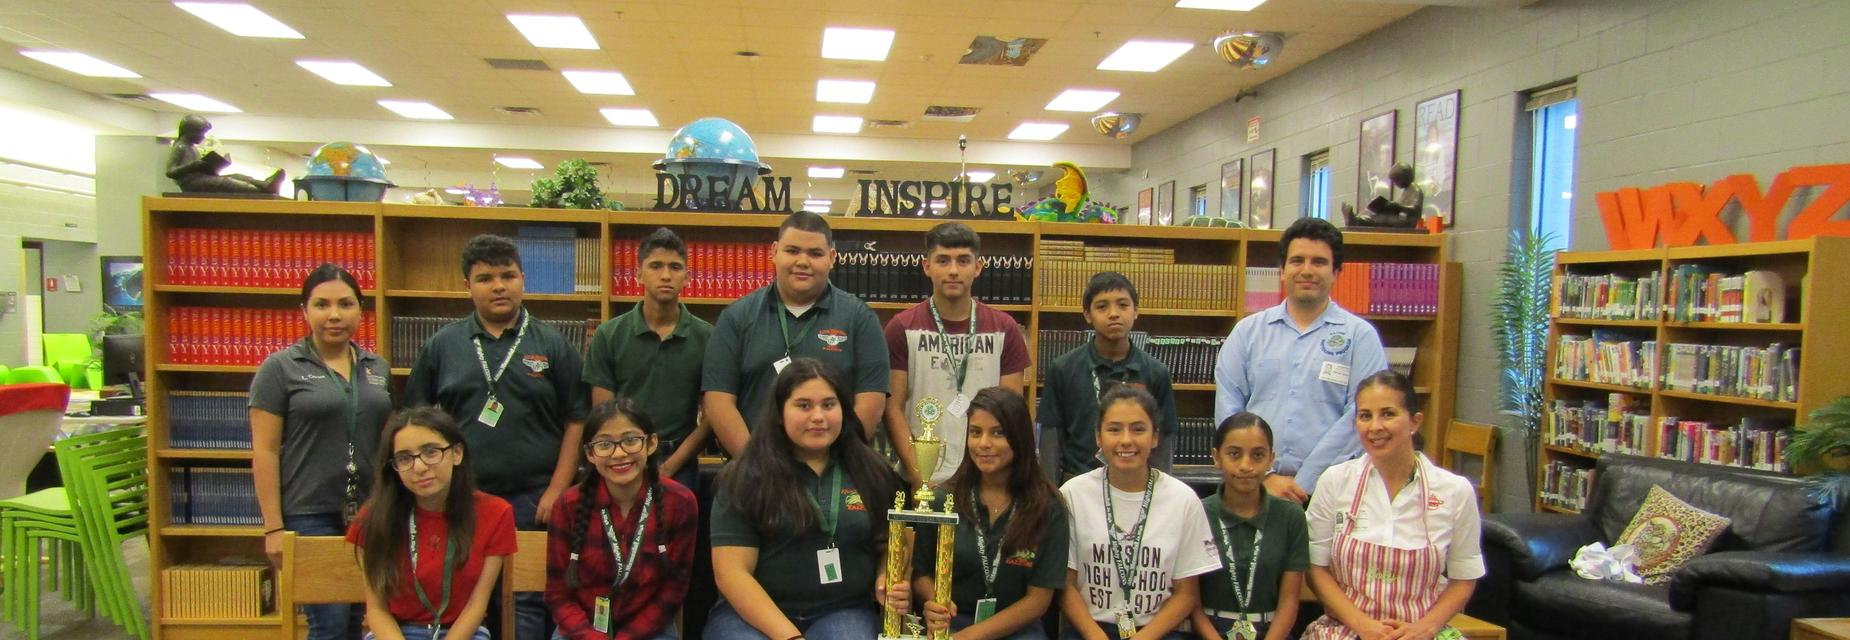 AMJH students are the recycling champs for the City of Alton